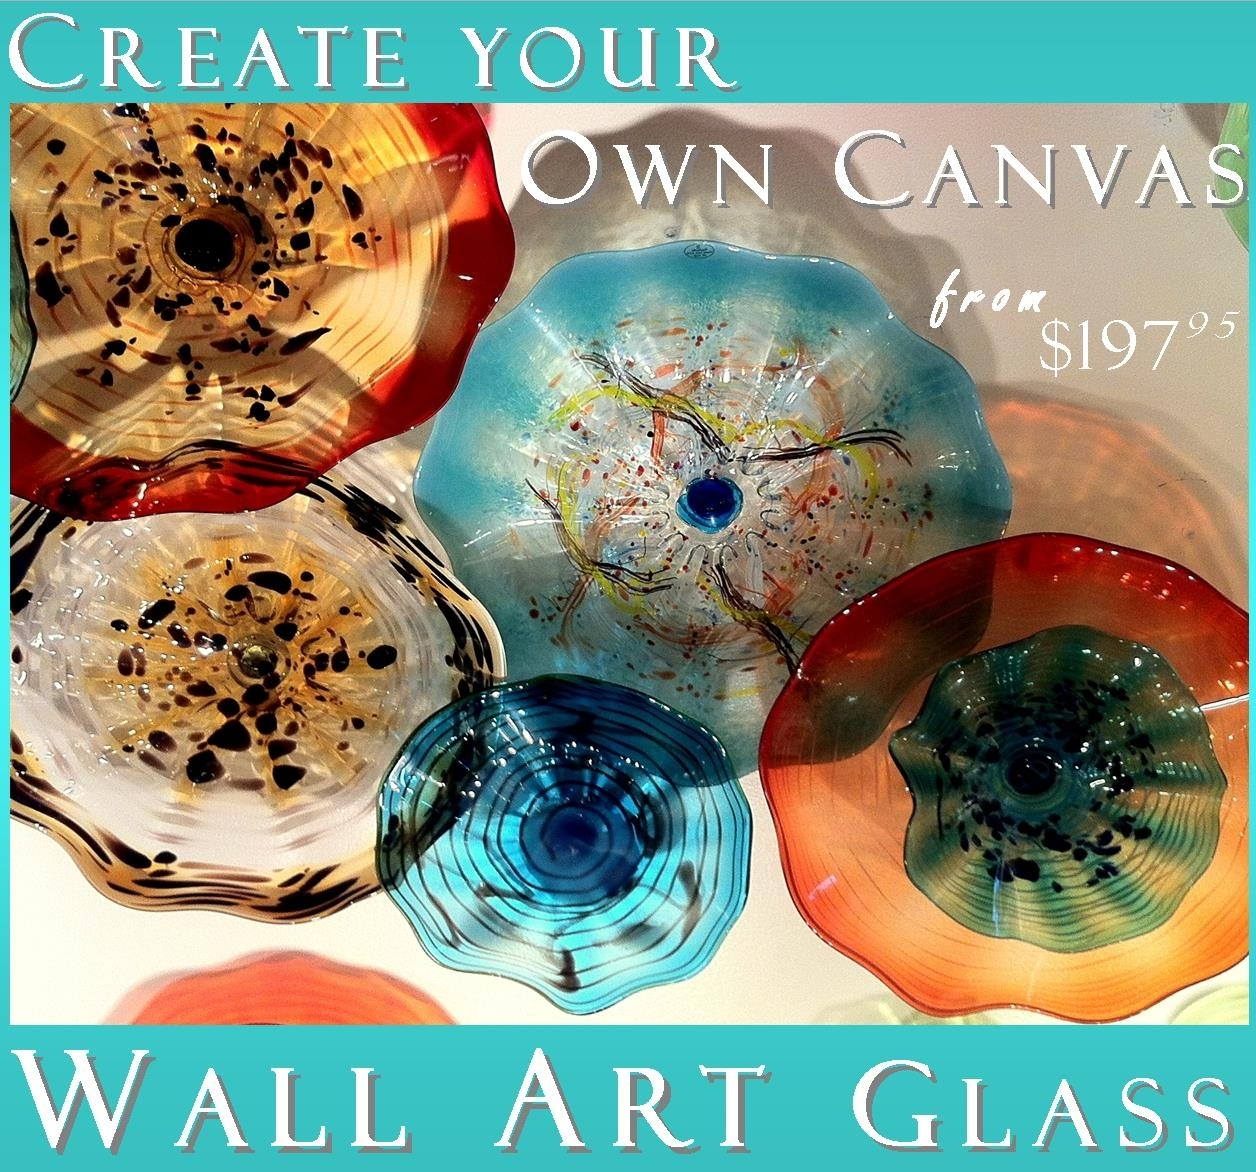 1020 Glass Art Fine Gifts And Decor, Glass Plate Wall Art   Swinki Throughout Glass Plate Wall Art (Photo 3 of 20)